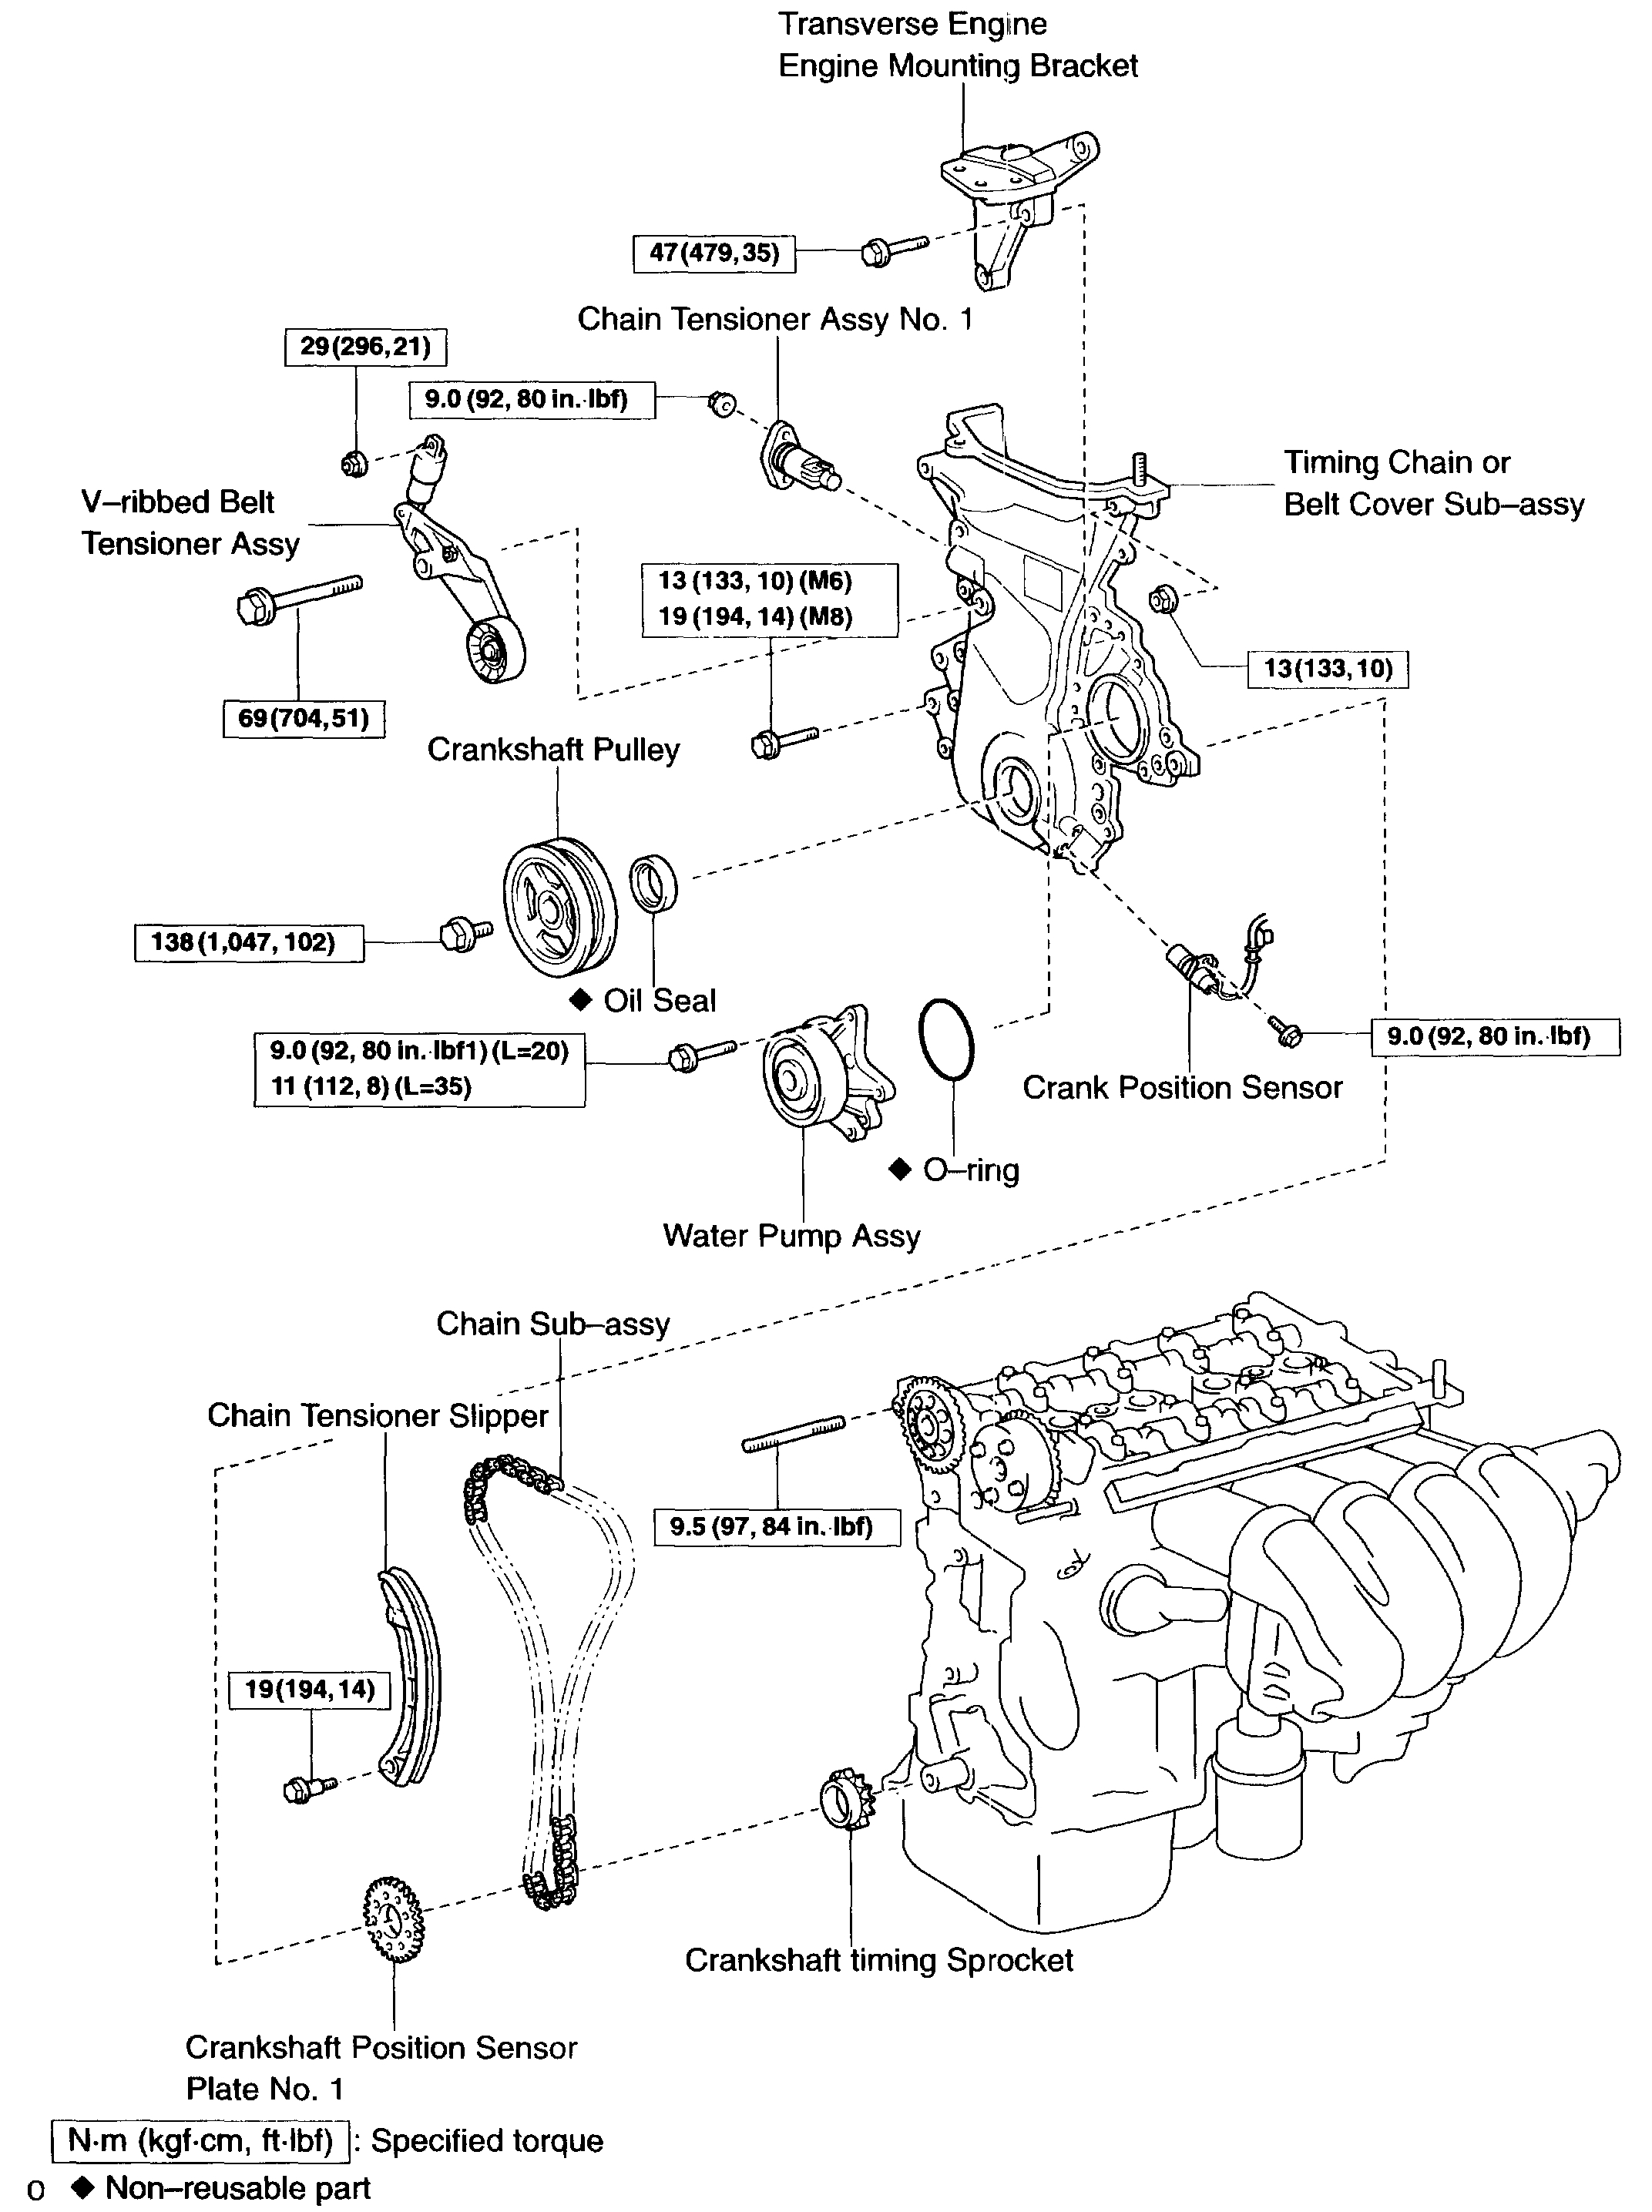 Timing Chain Tensioner Replacement Can You Tell Me How To